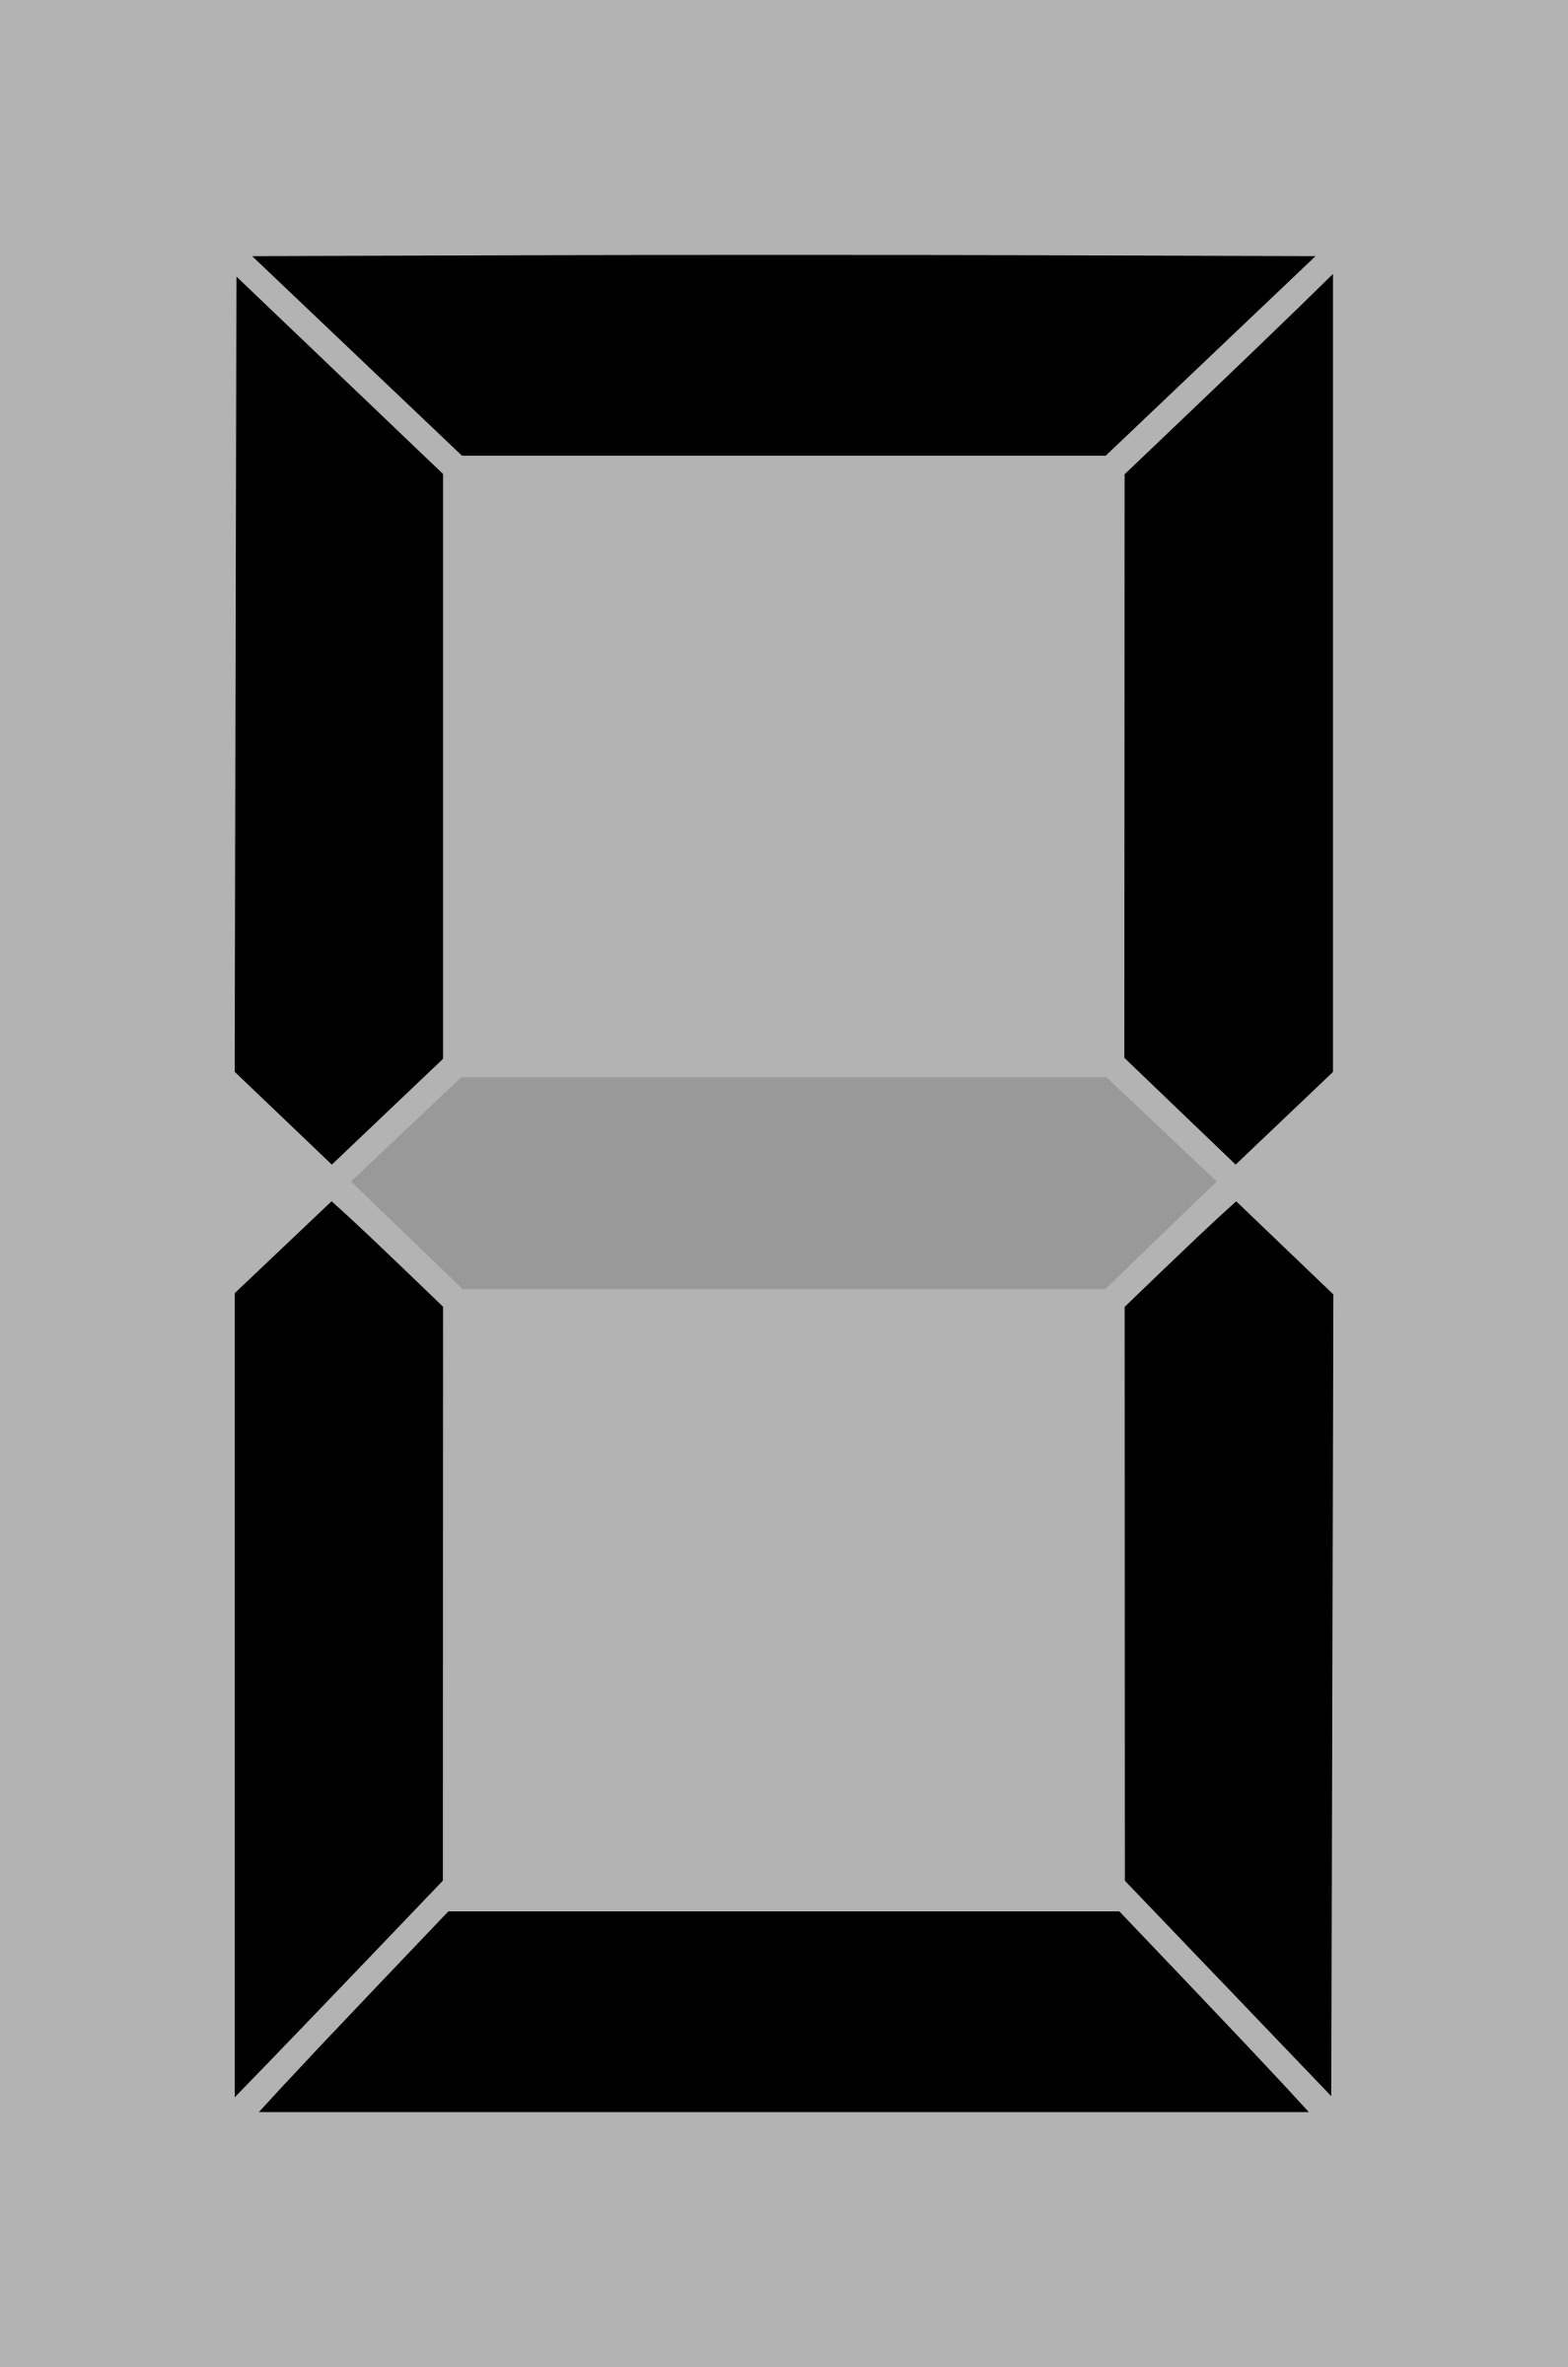 Seven segment display gray 0 by alex8664